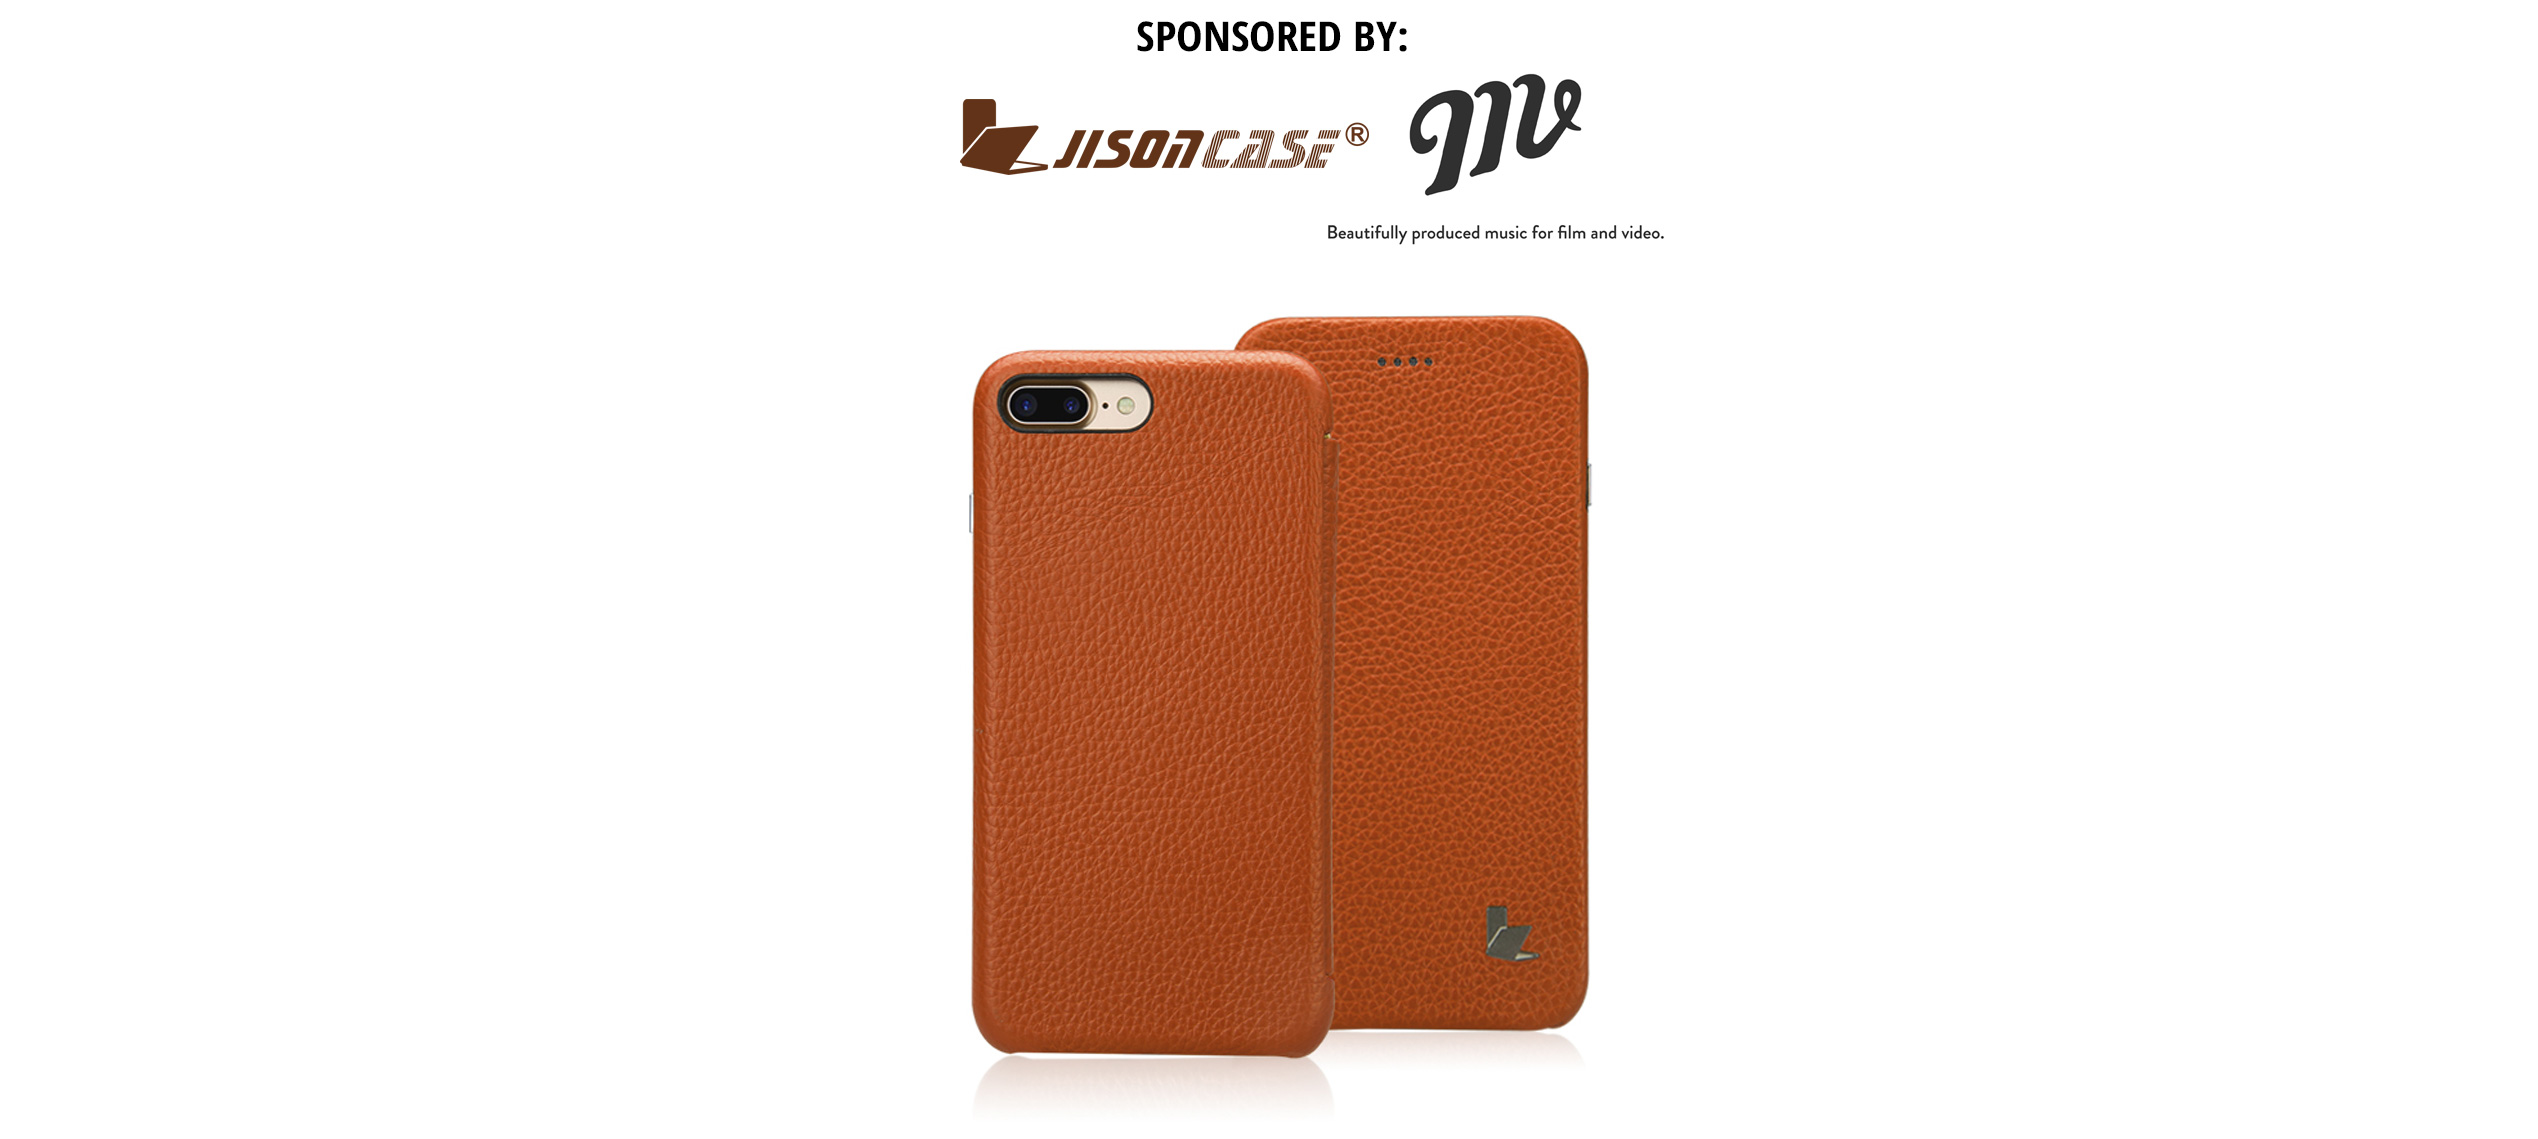 JISONCASE REAL LEATHER IPHONE  CASE REVIEW